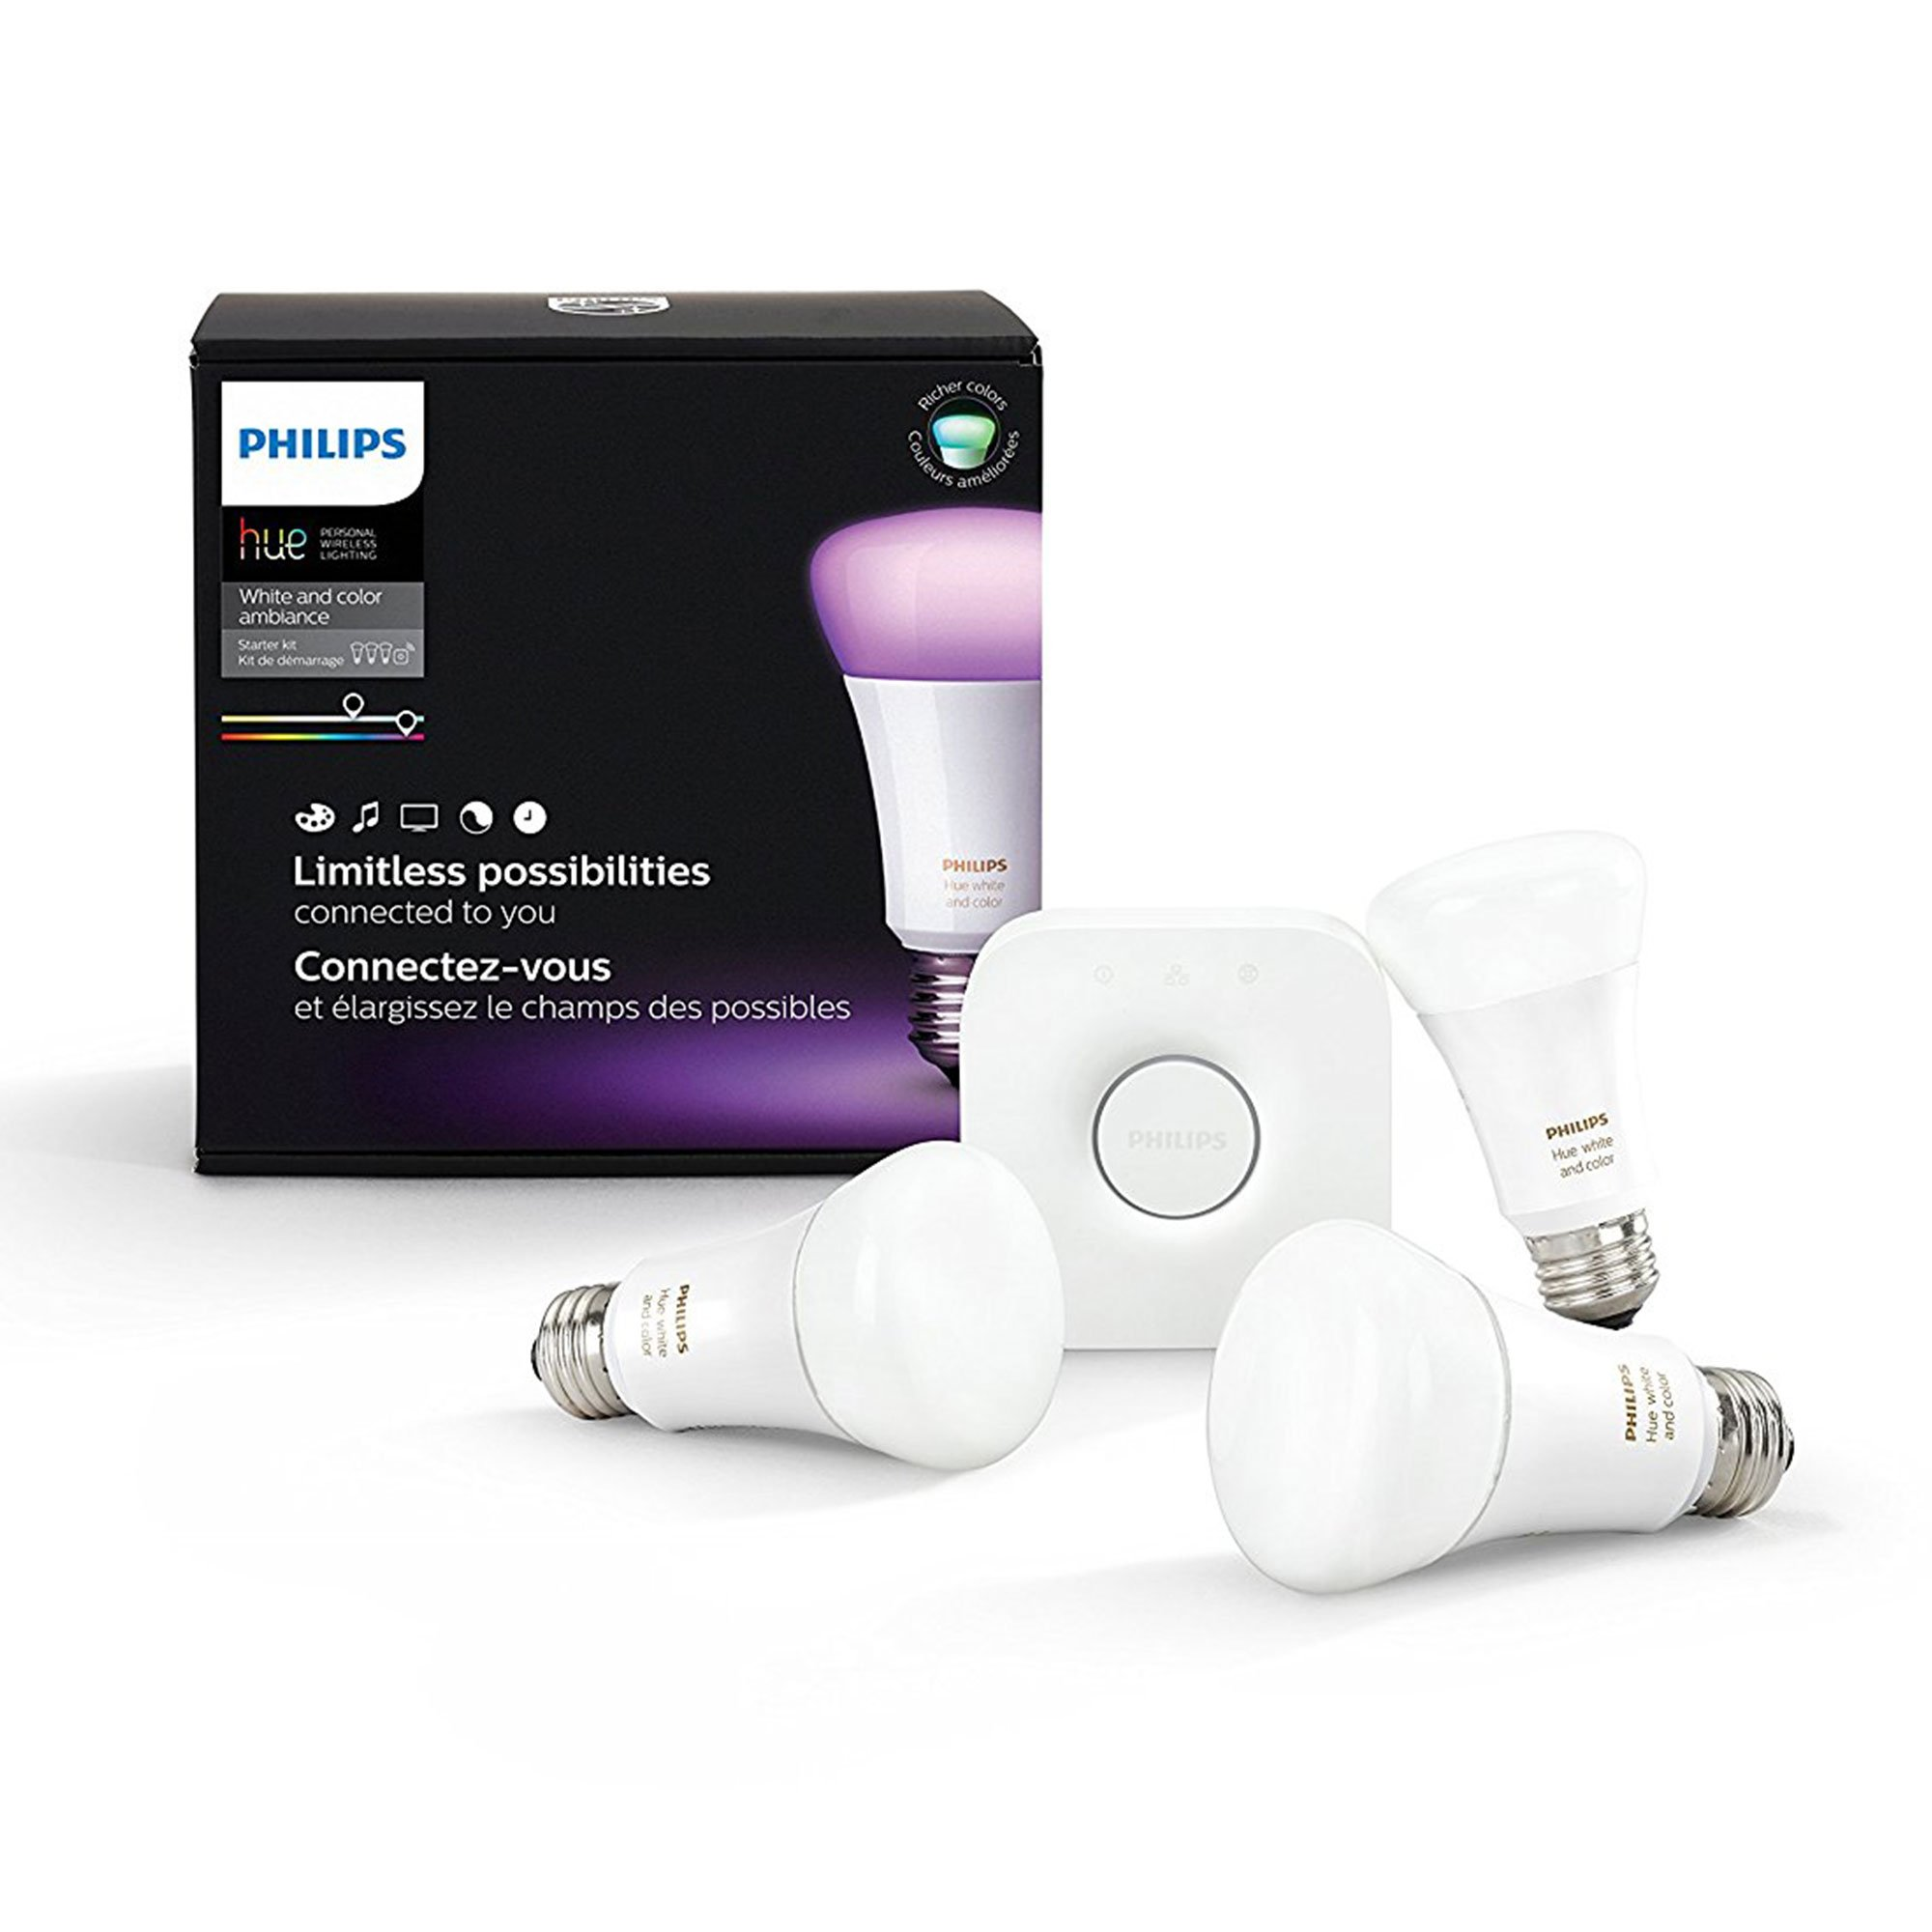 Philips Hue 464479 60W Equivalent White and Color Ambiance A19 Starter Kit, 3rd Generation, Works with Amazon Alexa by Philips